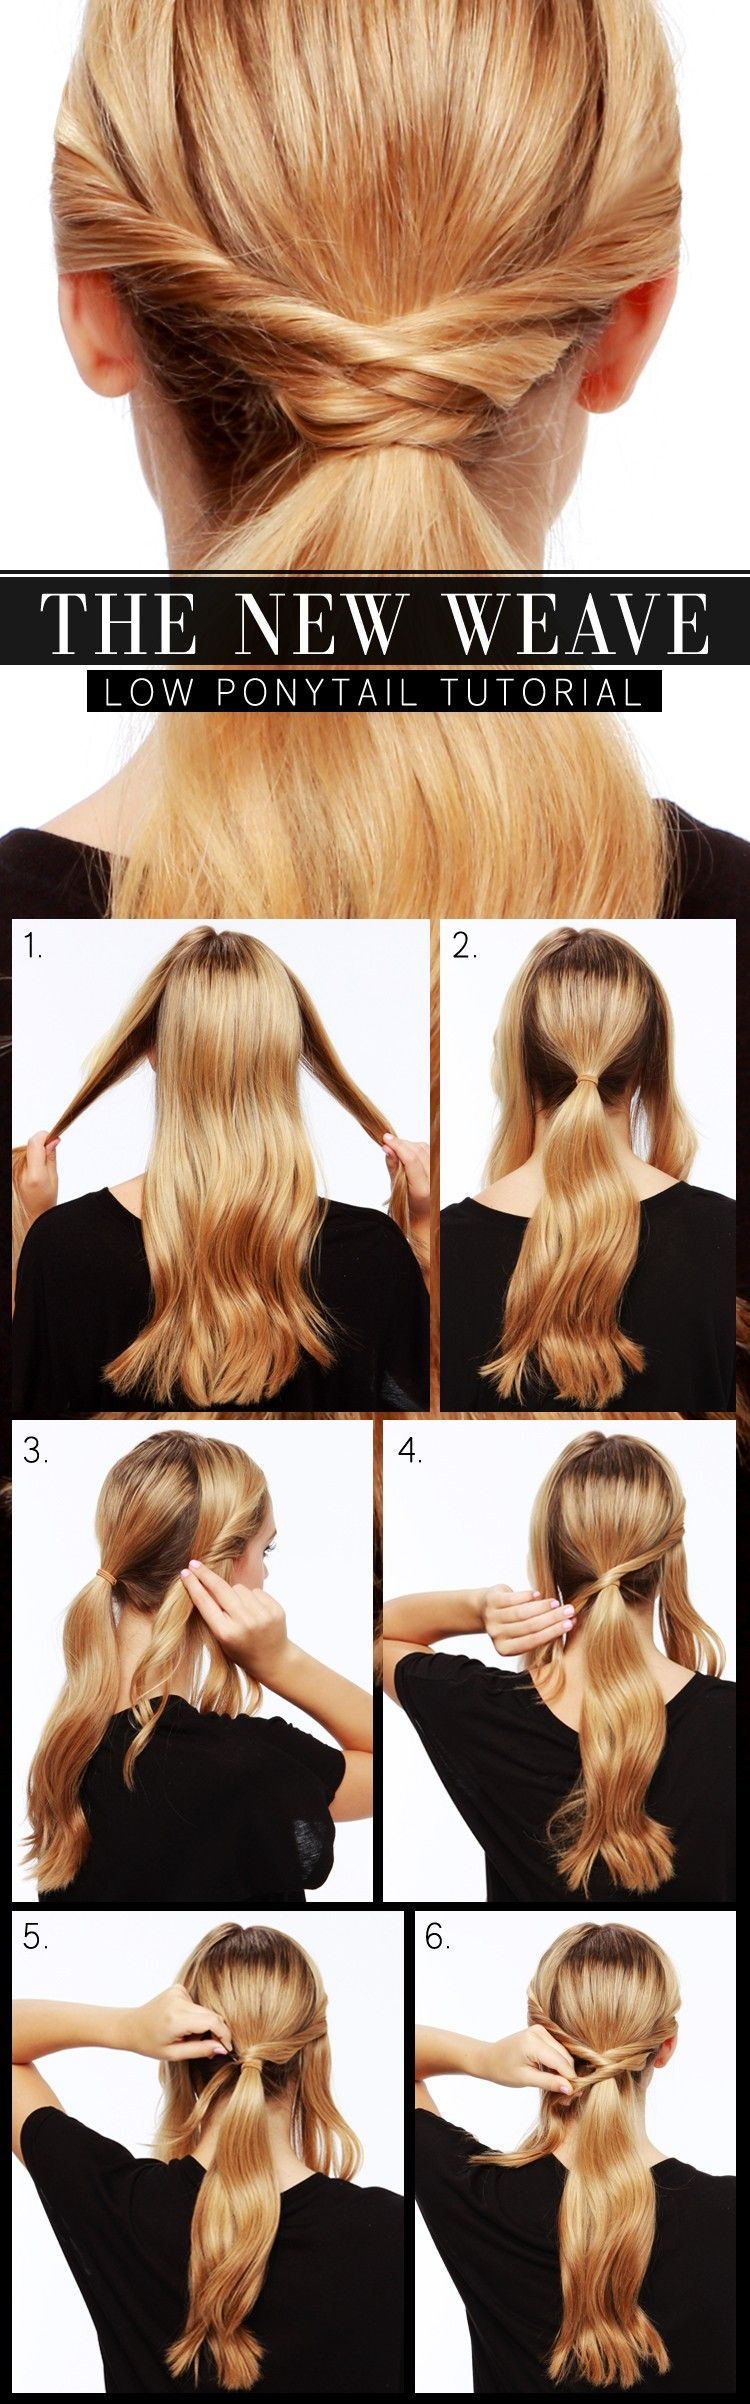 99 Awesome Super Easy Casual Hairstyles for Medium Hair